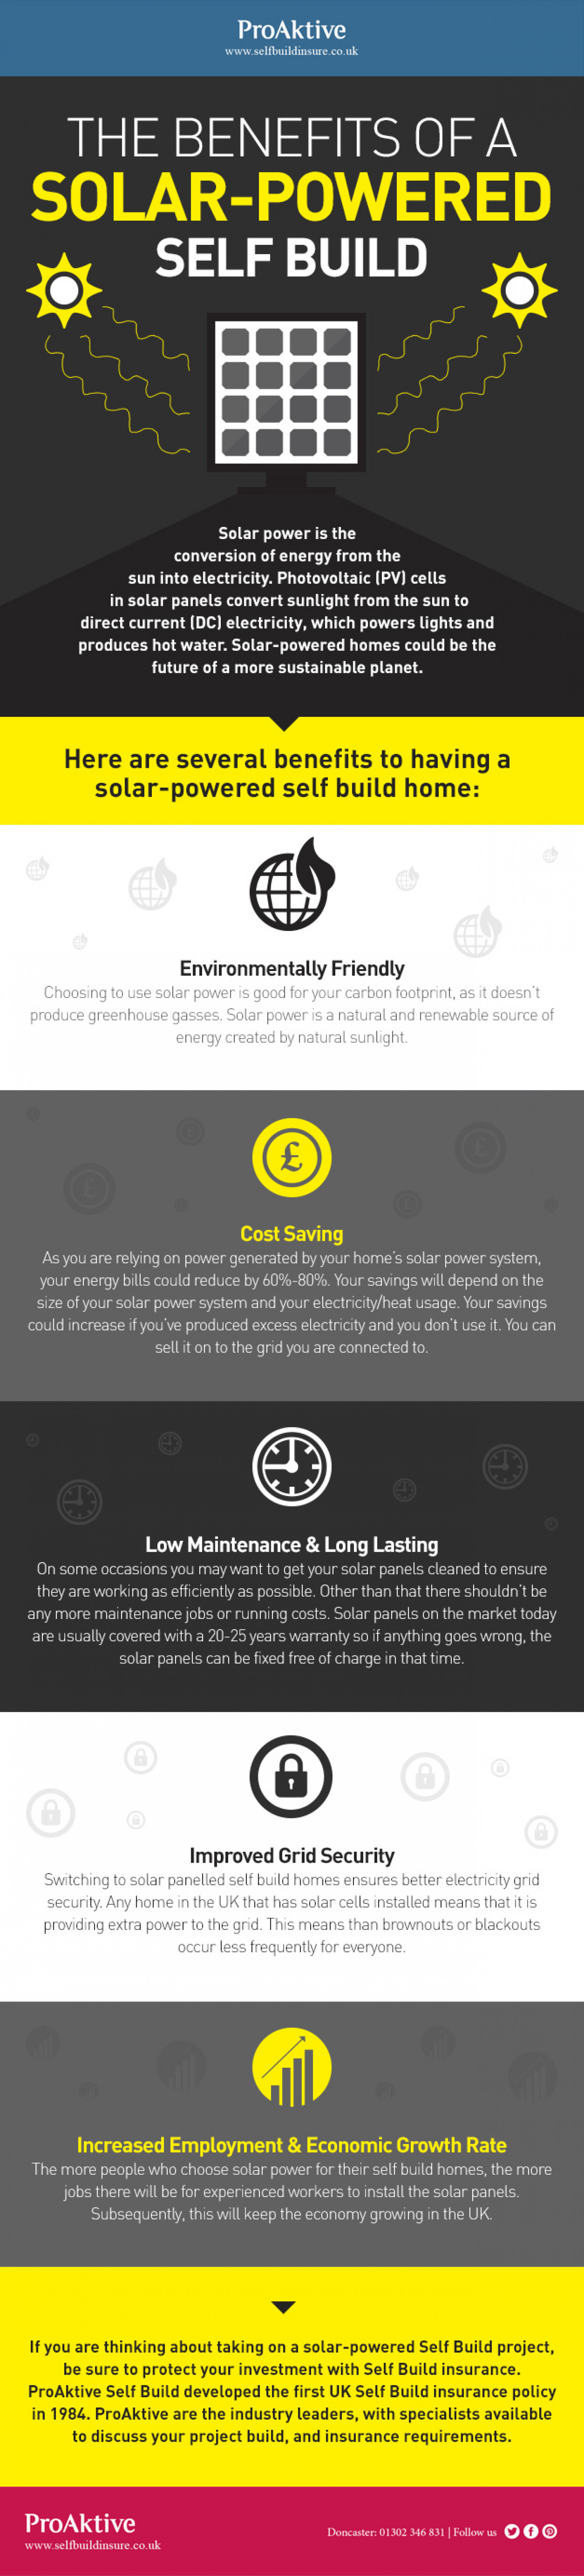 The Benefits of a Solar-powered Self Build Infographic